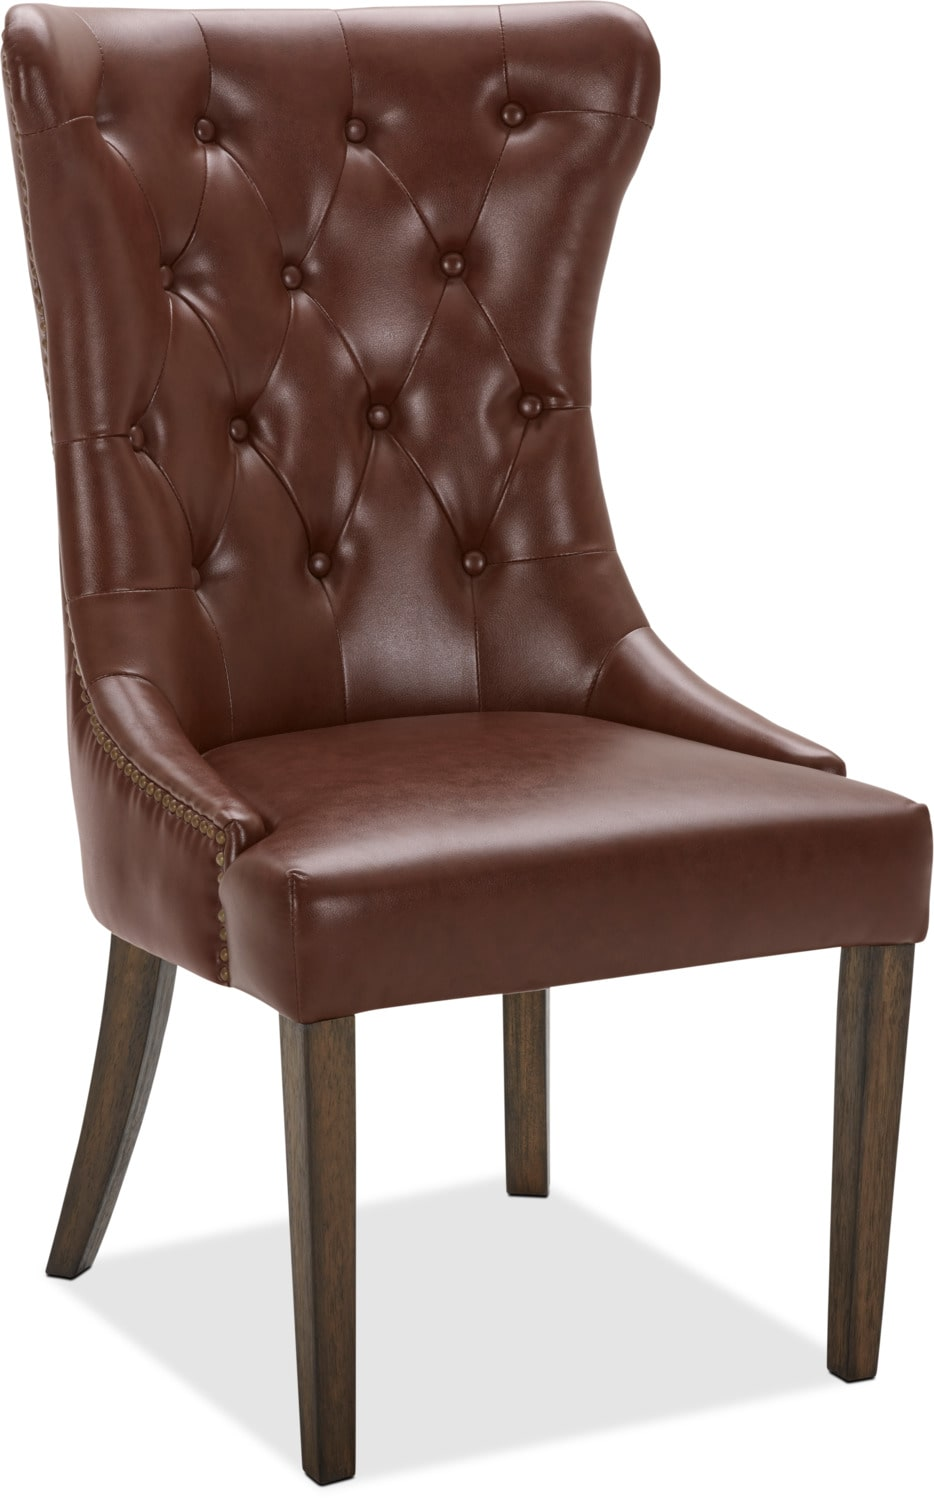 Dining Room Furniture - Gabby Dining Chair